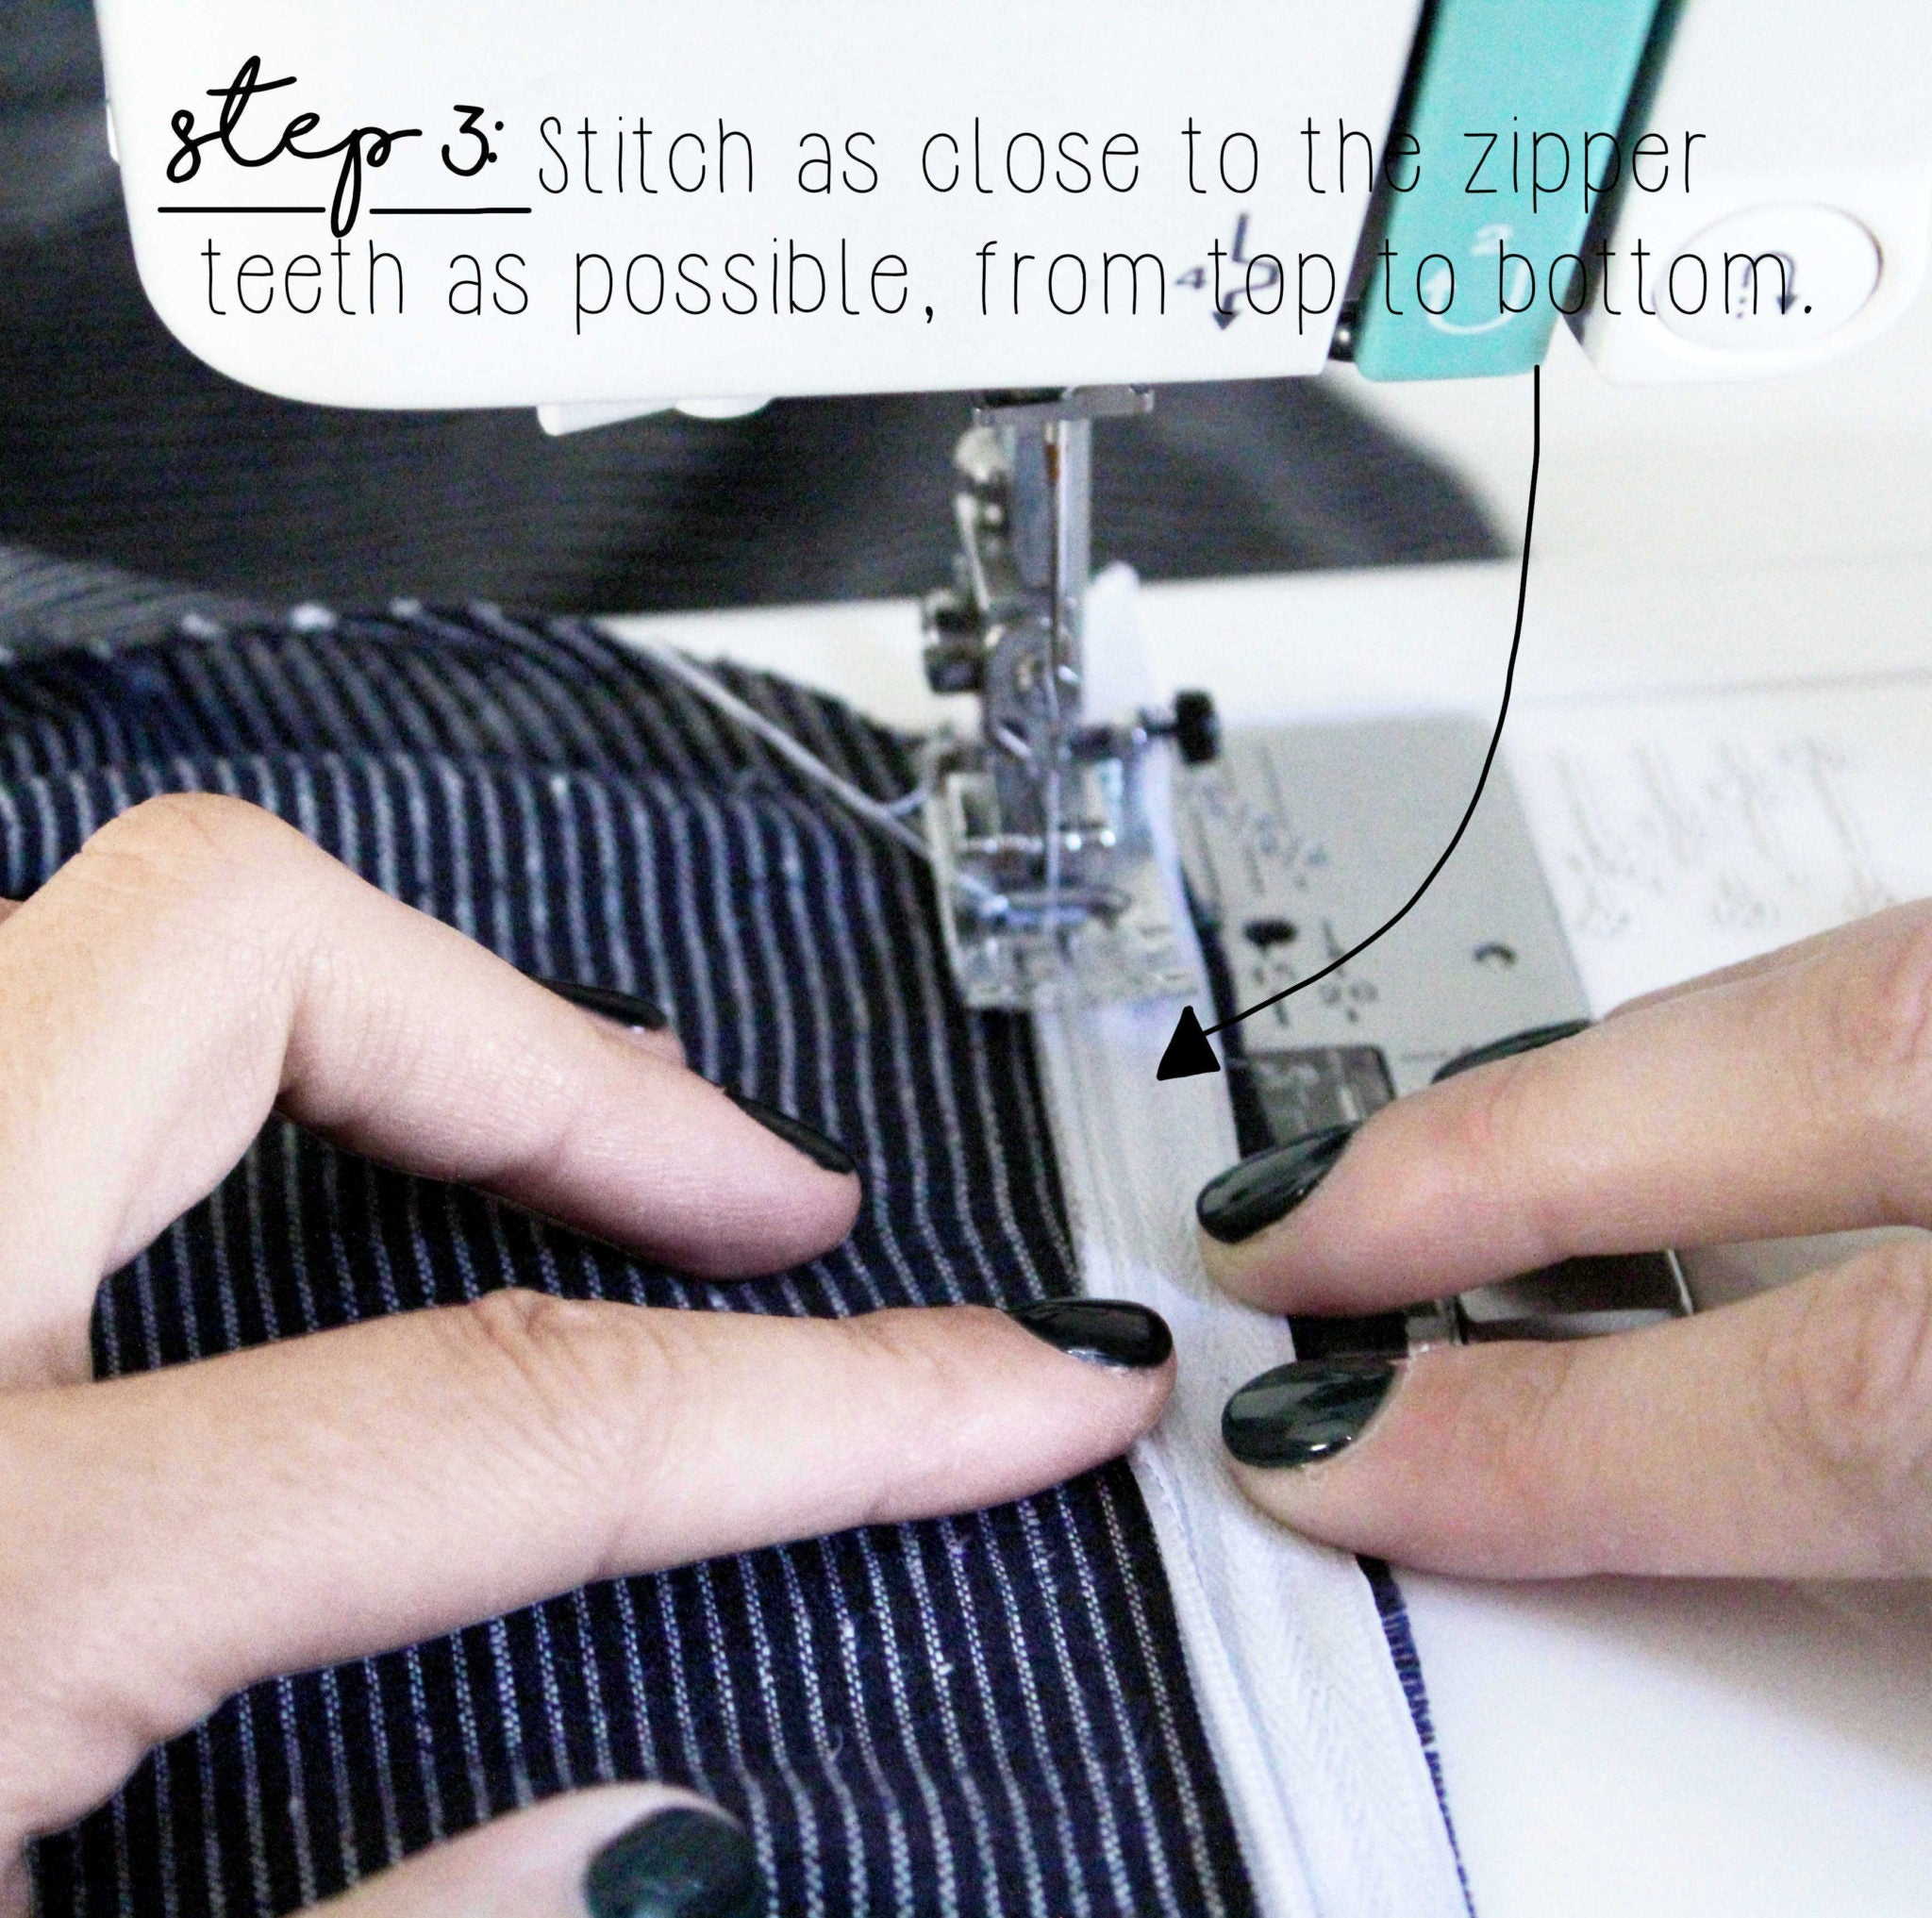 How To Sew An Invisible Zipper Sewing Tutorial: Step 3